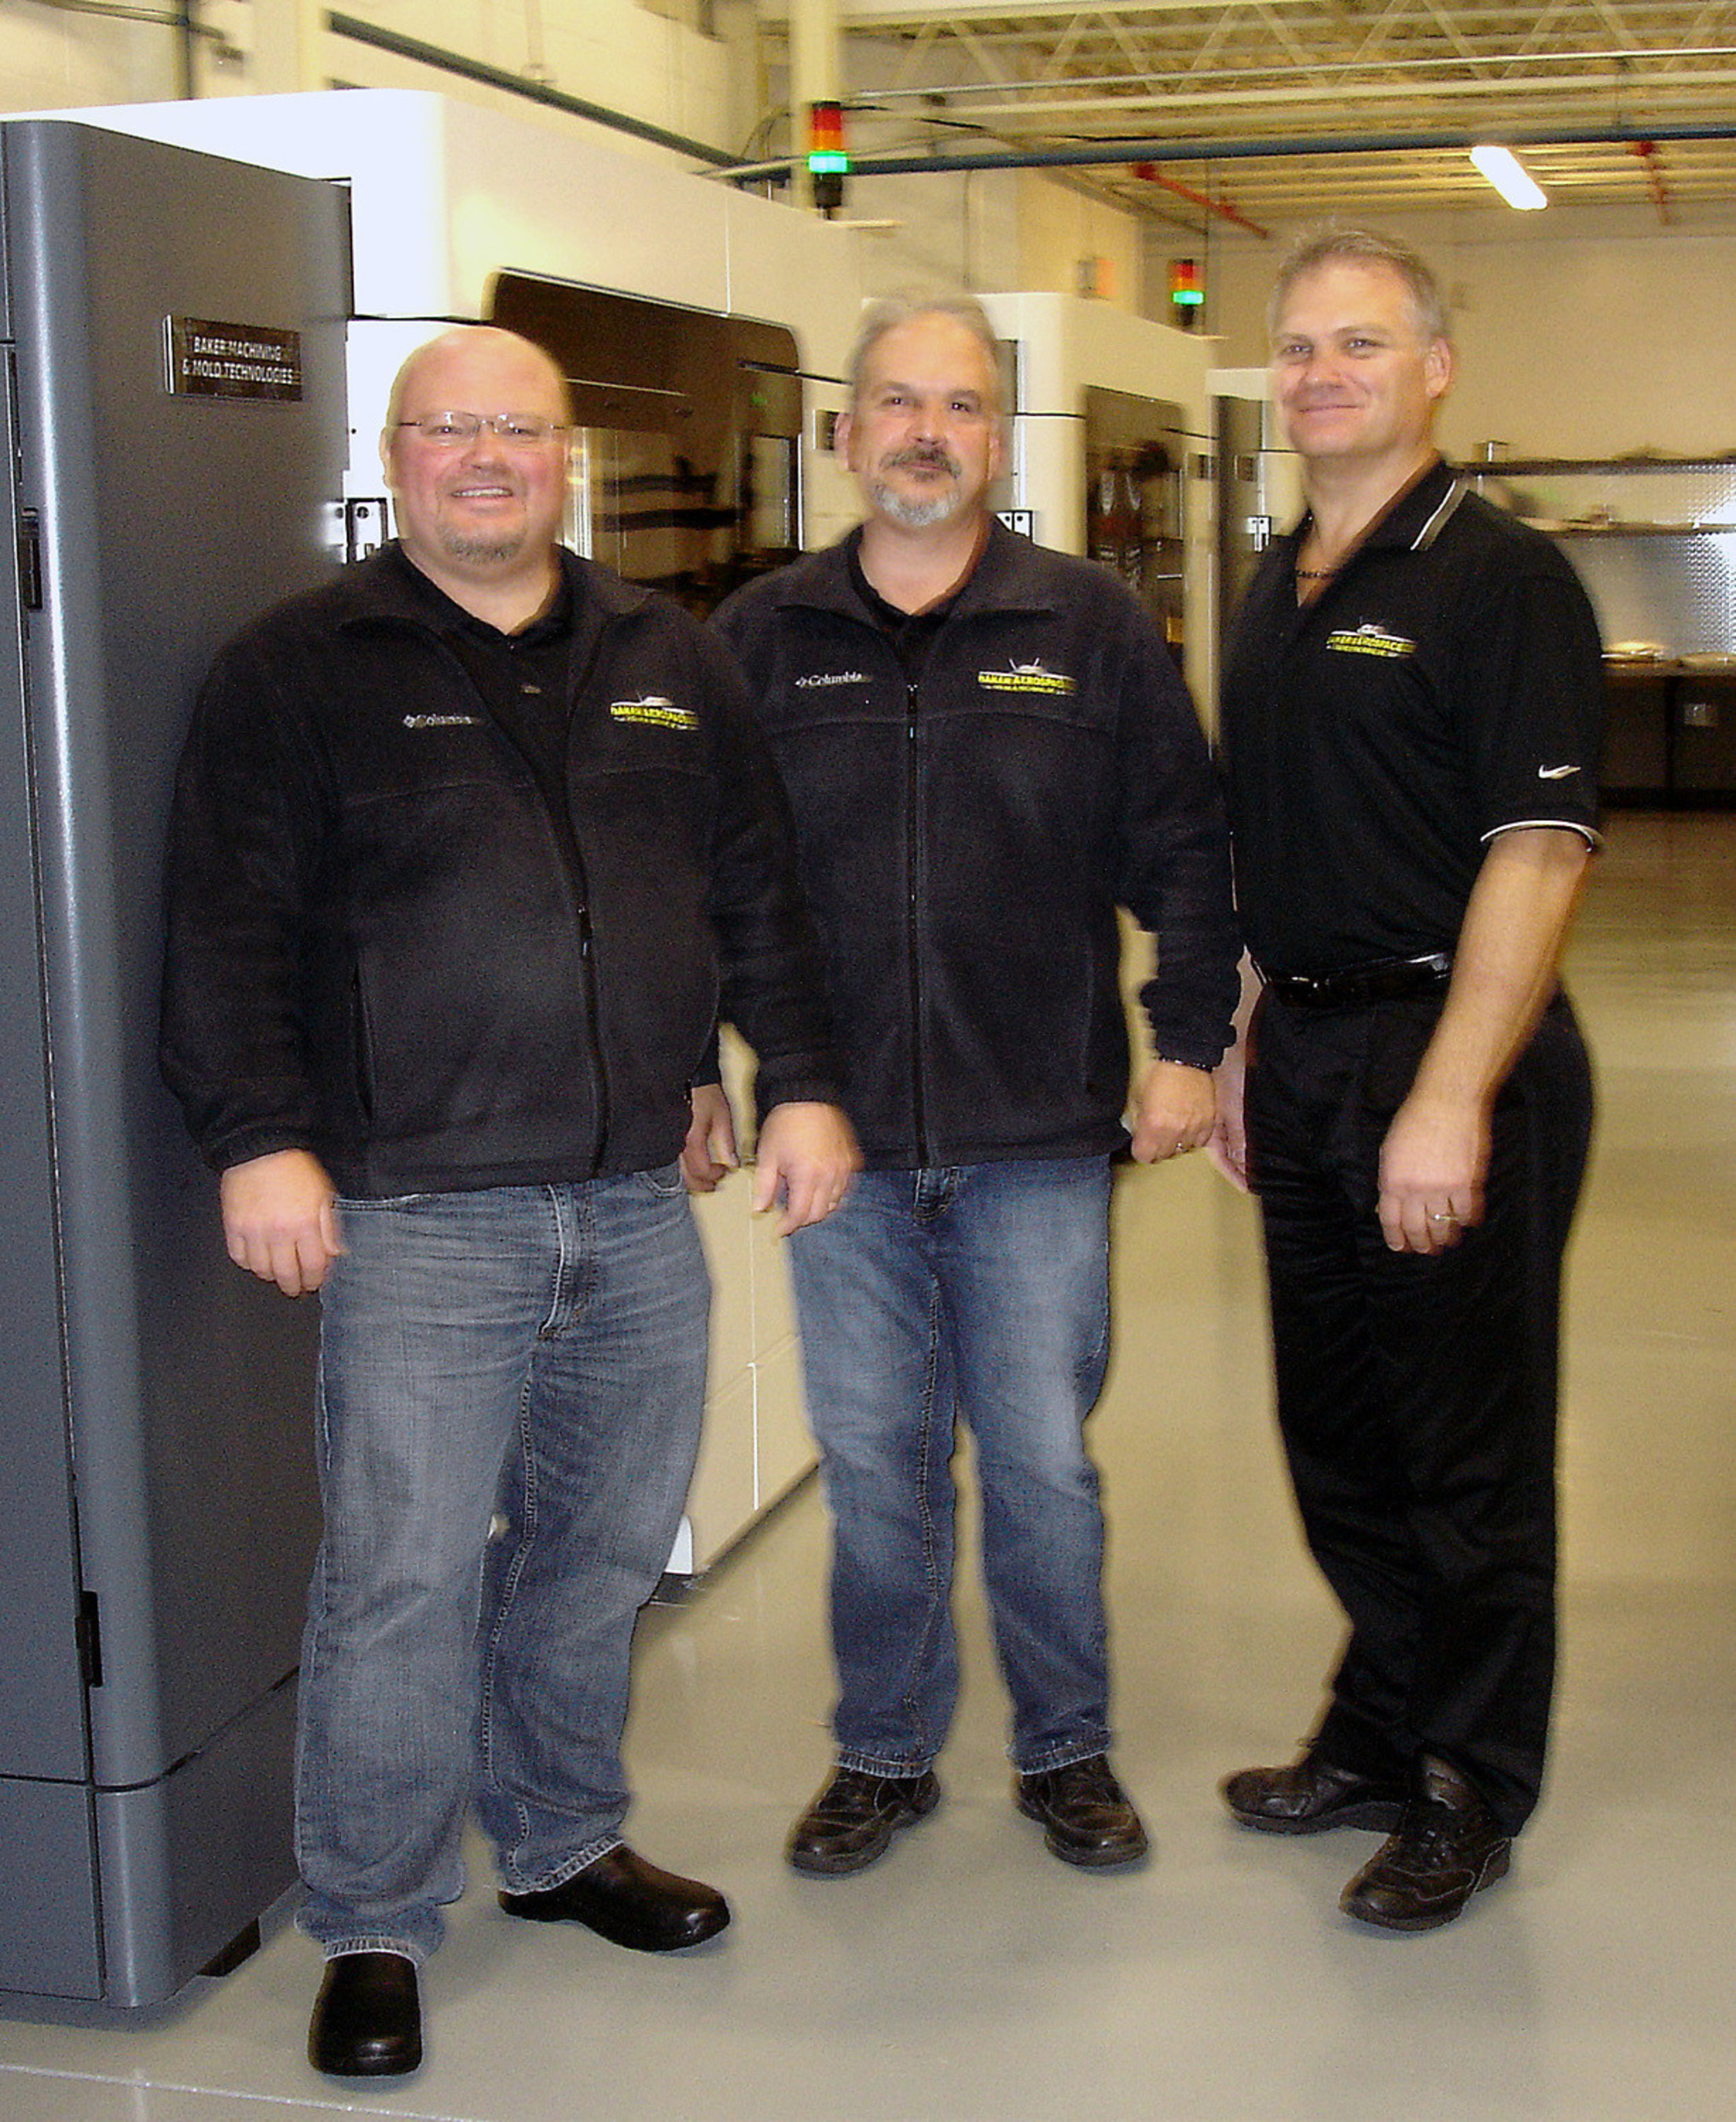 Baker Aerospace founders Scott (left) and Kevin Baker (right) flank new additive & molding tooling director Mike Misener in the company's 3D printing lab.